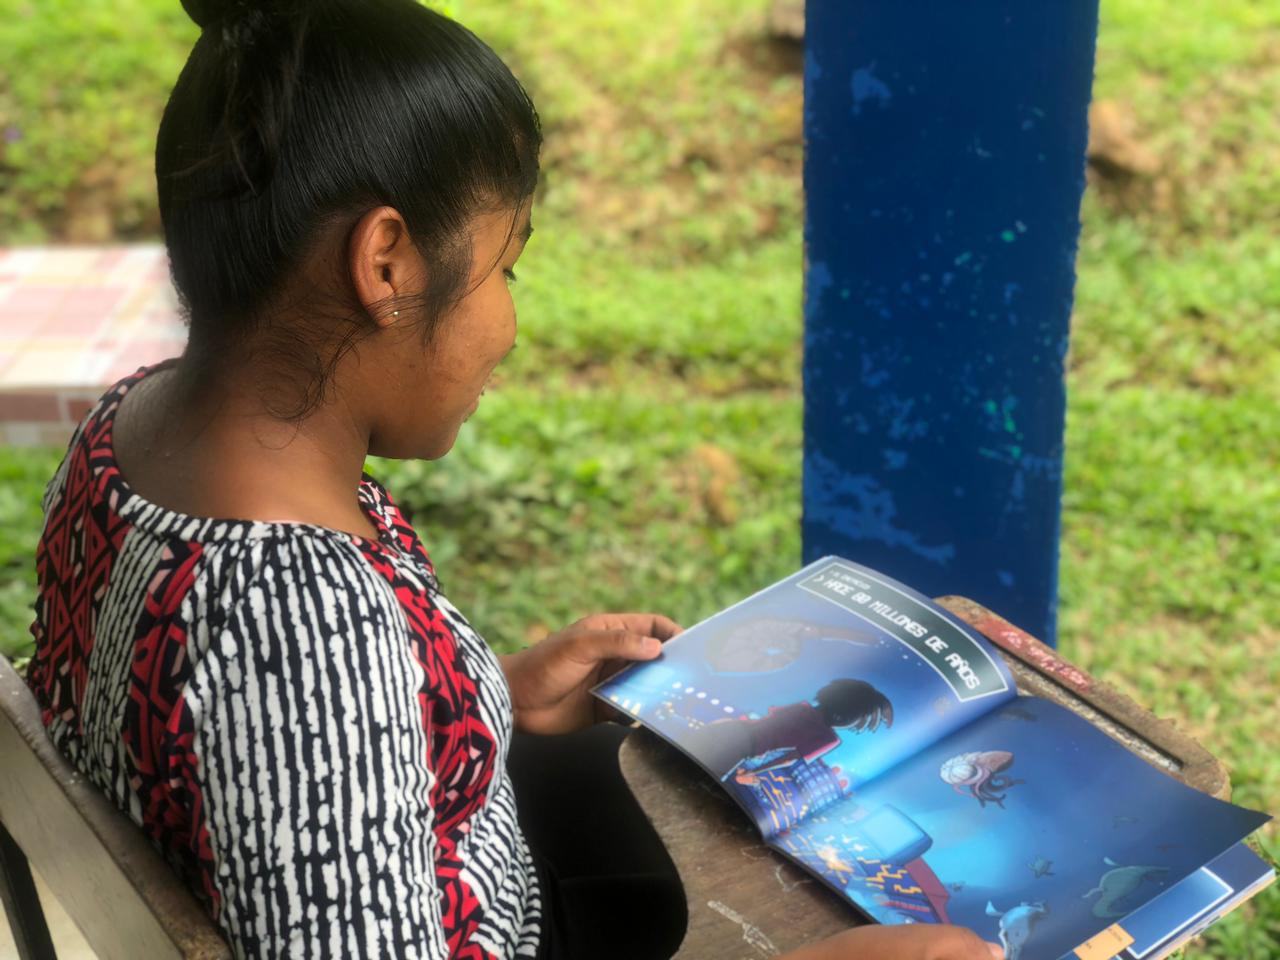 A young girl reading Martina and the Bridge of Time in school